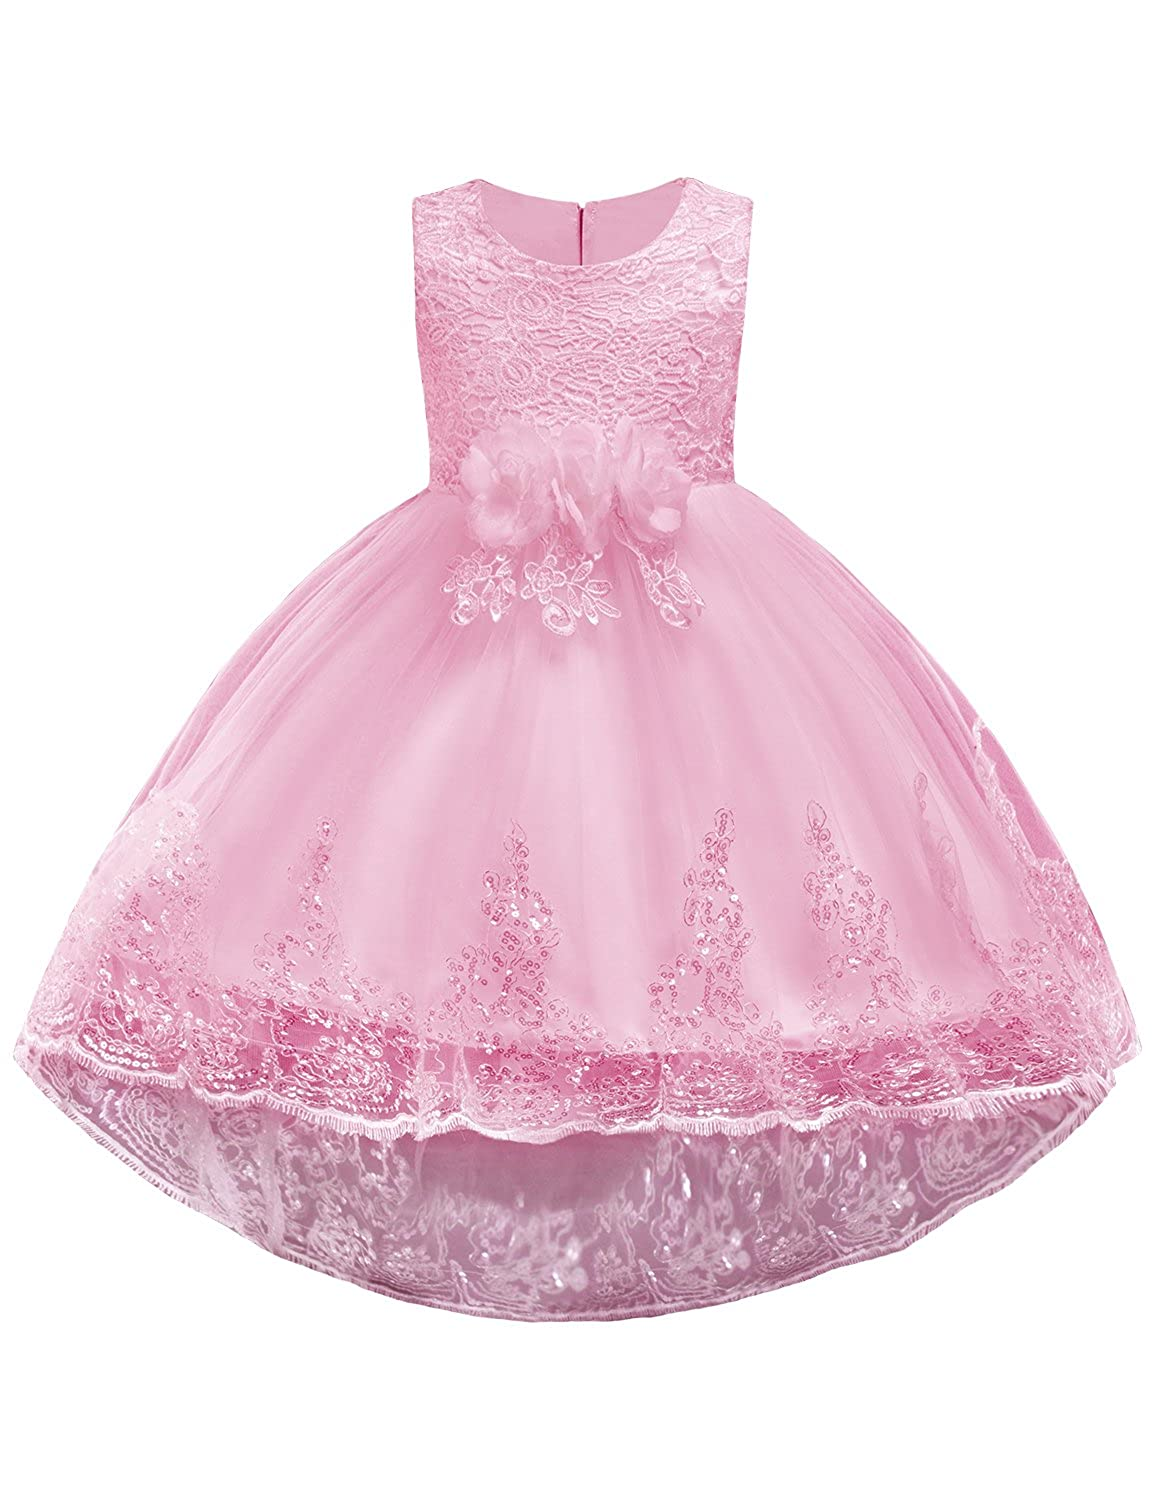 37b1a789e6338 Girls High Low Floral Printing Sleeveless Bowknot Party Dress, Children  Ruffles Prom Dresses, Ball Gown Dress, give your child a attractive looking.